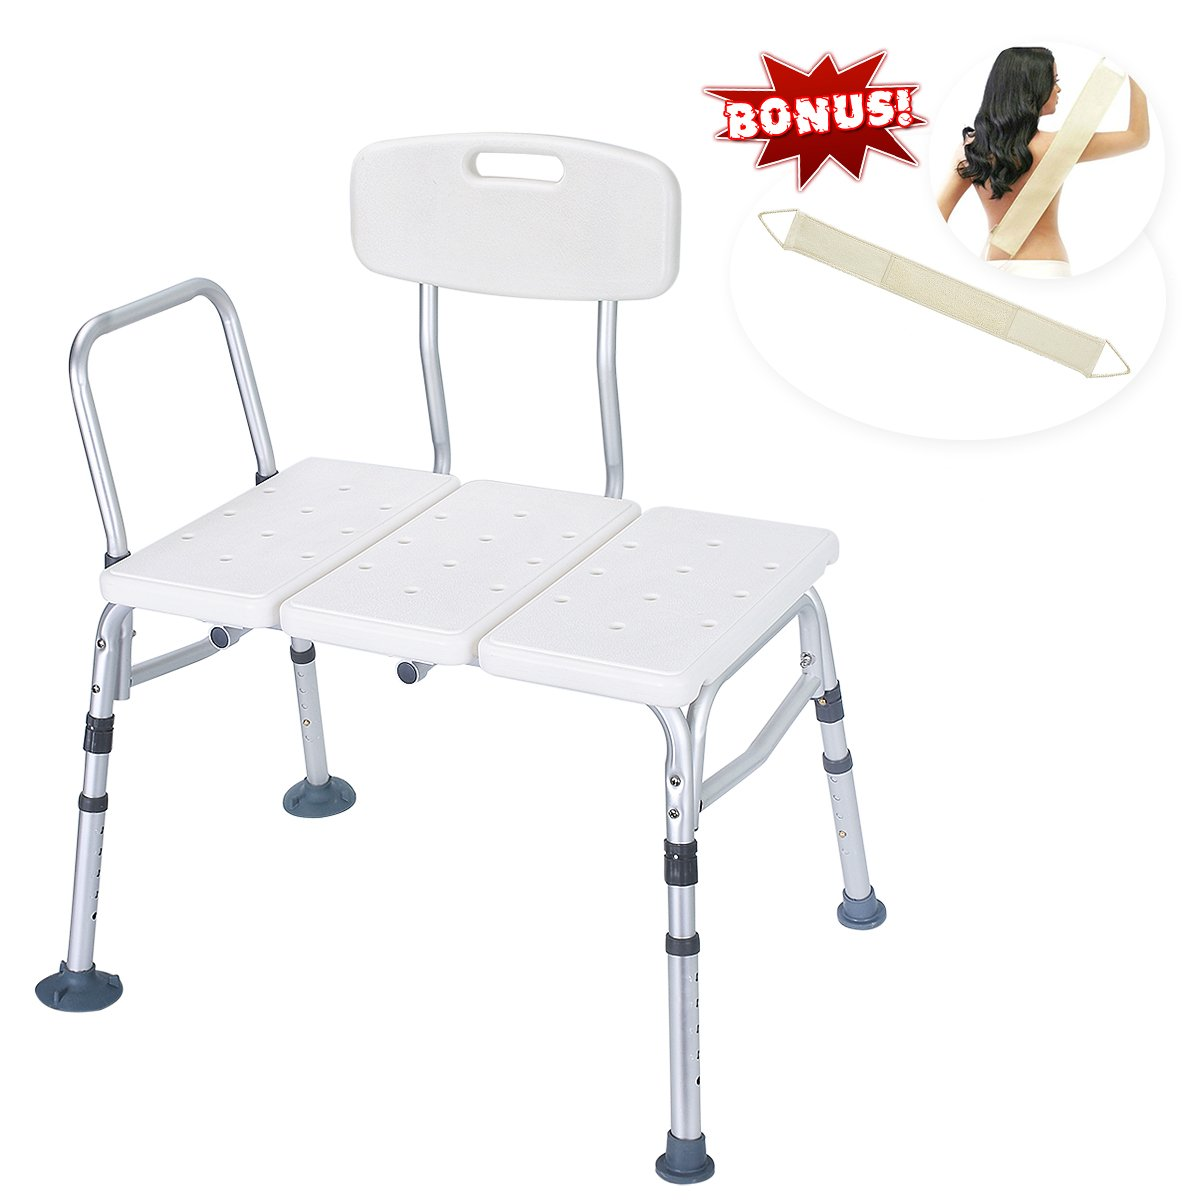 Health Line Tool-Free 400 lbs Transfer Bench, Deluxe Tub Adjustable Shower Bath Chair, w/Reversible Back and Non-Slip Feet, Great for Elderly, Disabled, Seniors & Bariatric - Free Loofah Back Scrubber